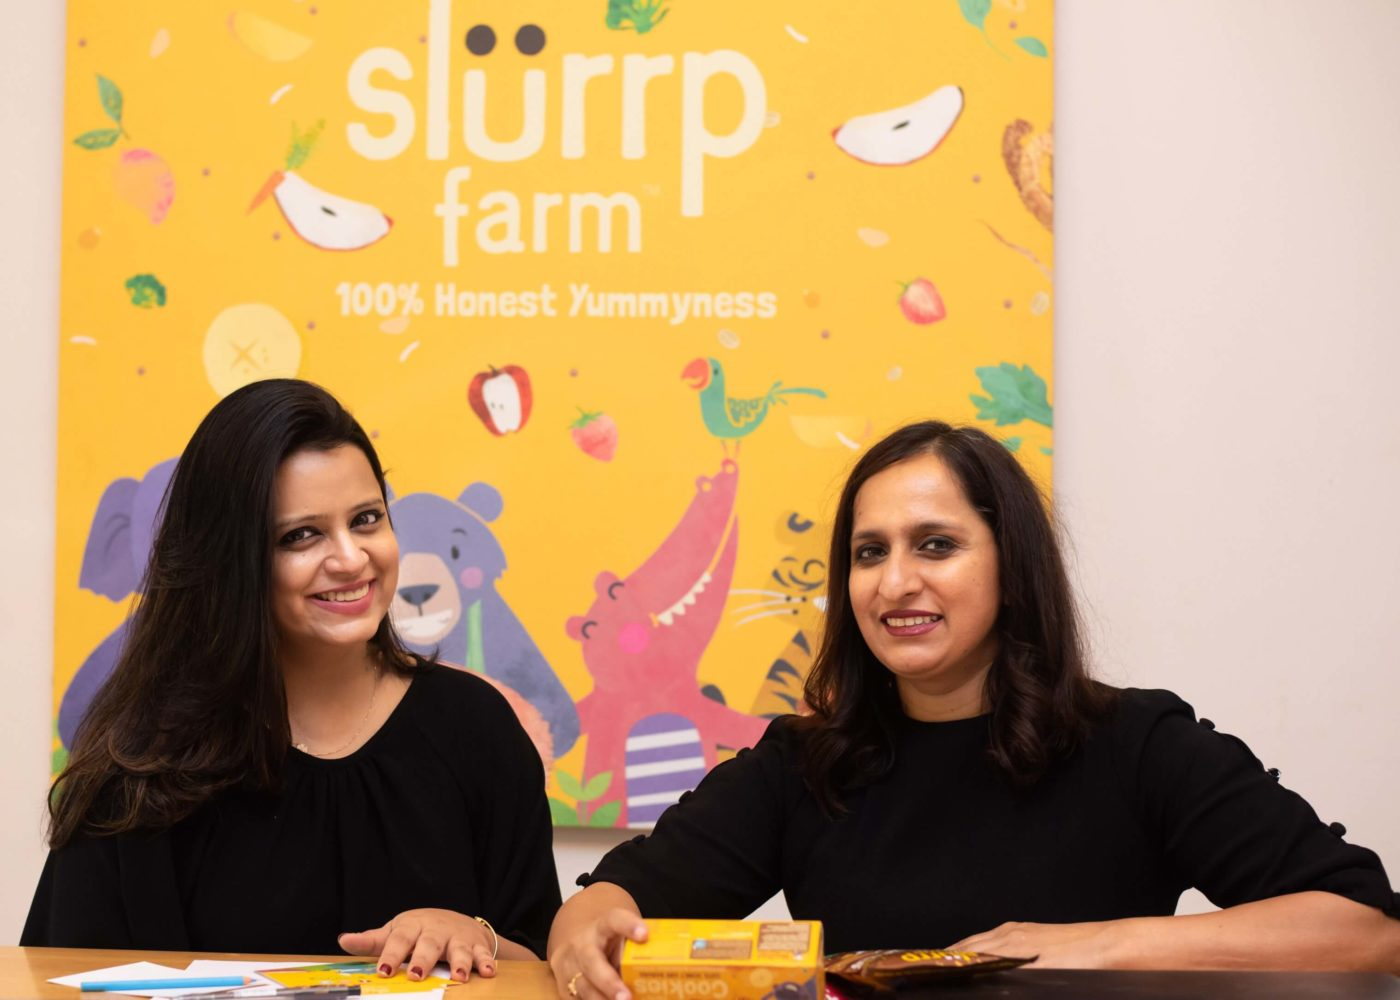 Shauravi & Meghna Co Founders Slurrp Farm